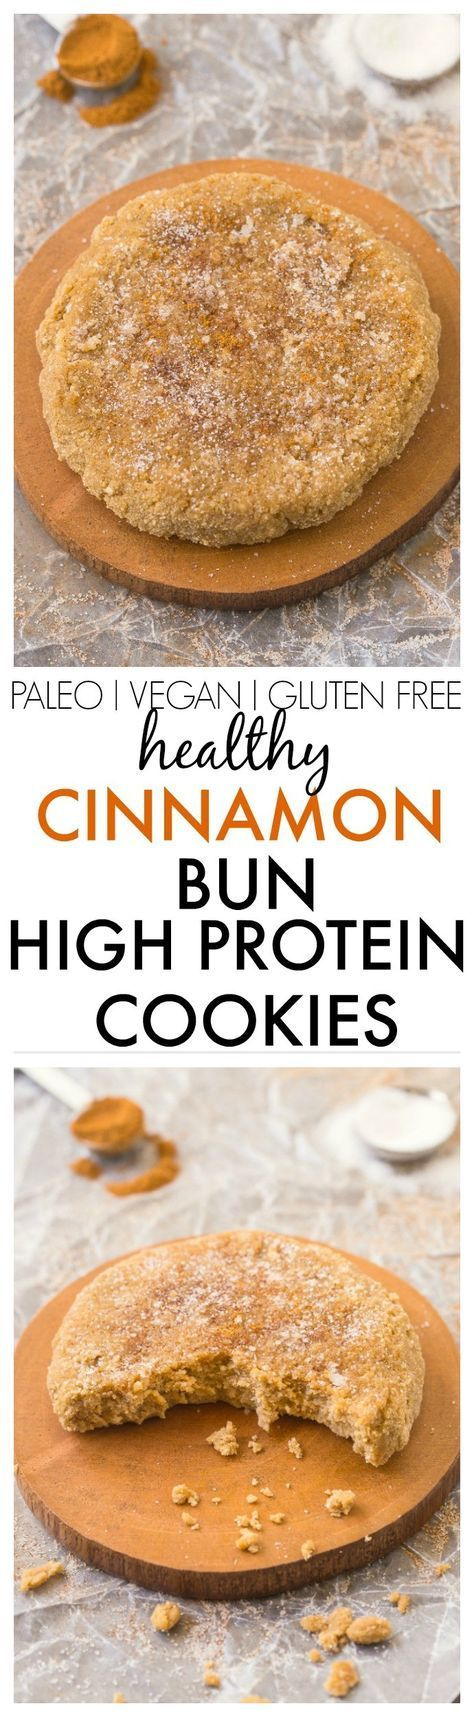 Healthy Cinnamon Bun Cookies packed with protein and 100% GRAIN FREE! NO butter…